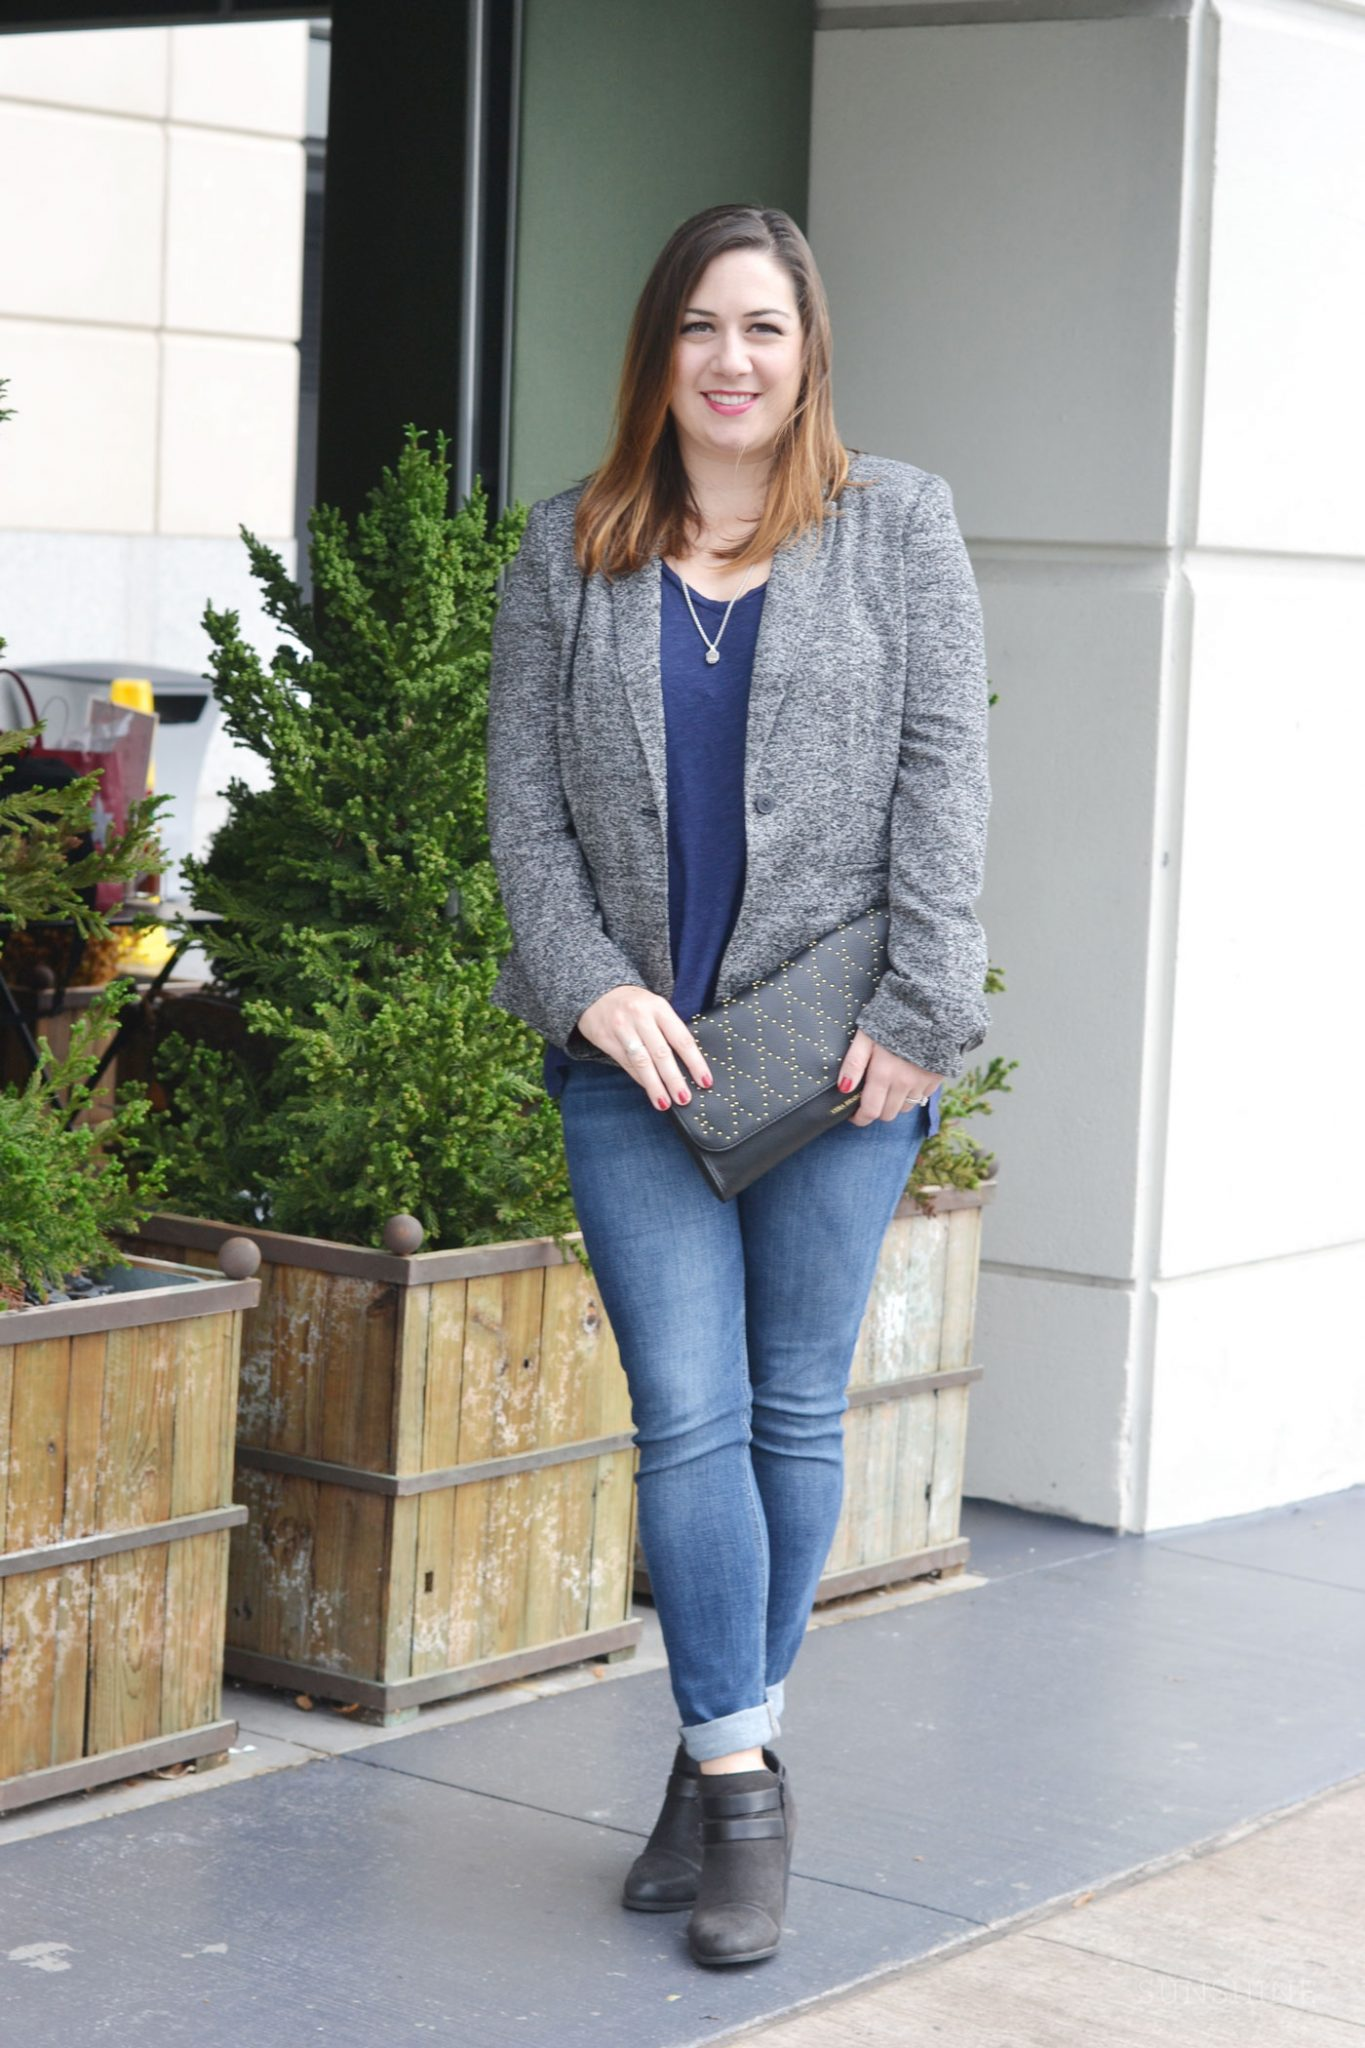 Affordable Blazer from Old Navy